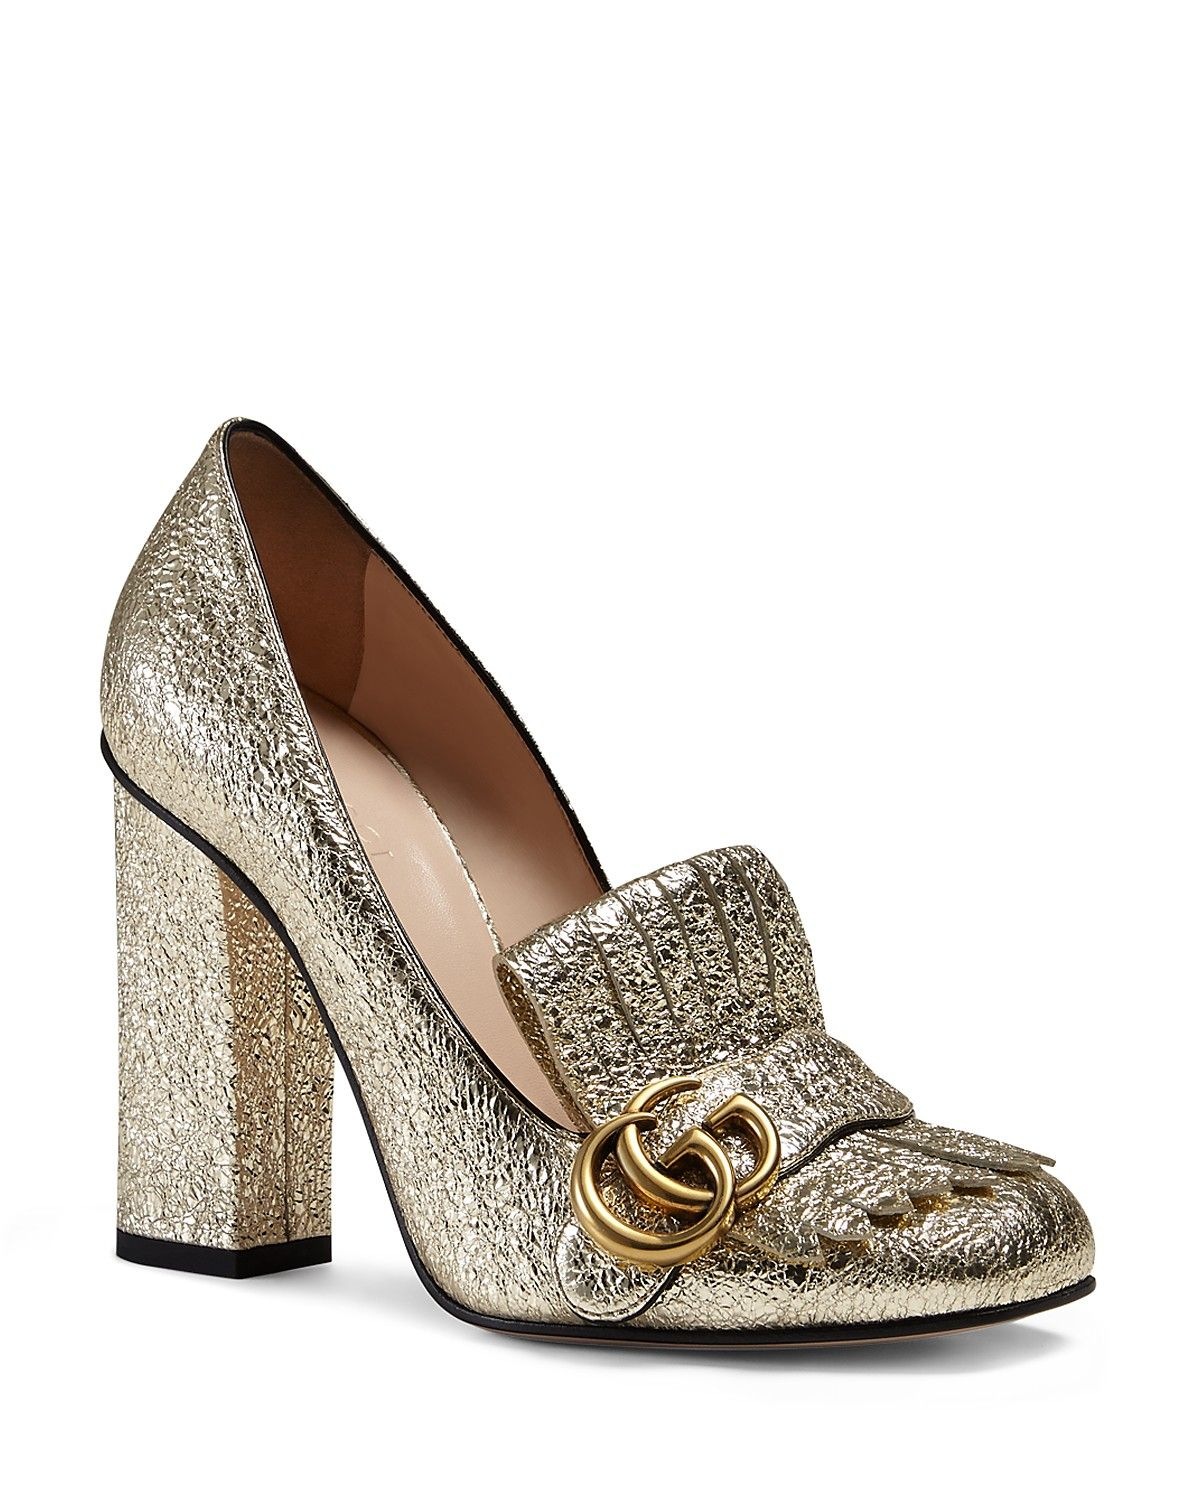 bd02da503 Gucci Metallic Marmont Mid Heel Loafers | Leather upper, leather lining,  leather sole | Made in Italy | Metallic leather almond toe pump with fold  over ...